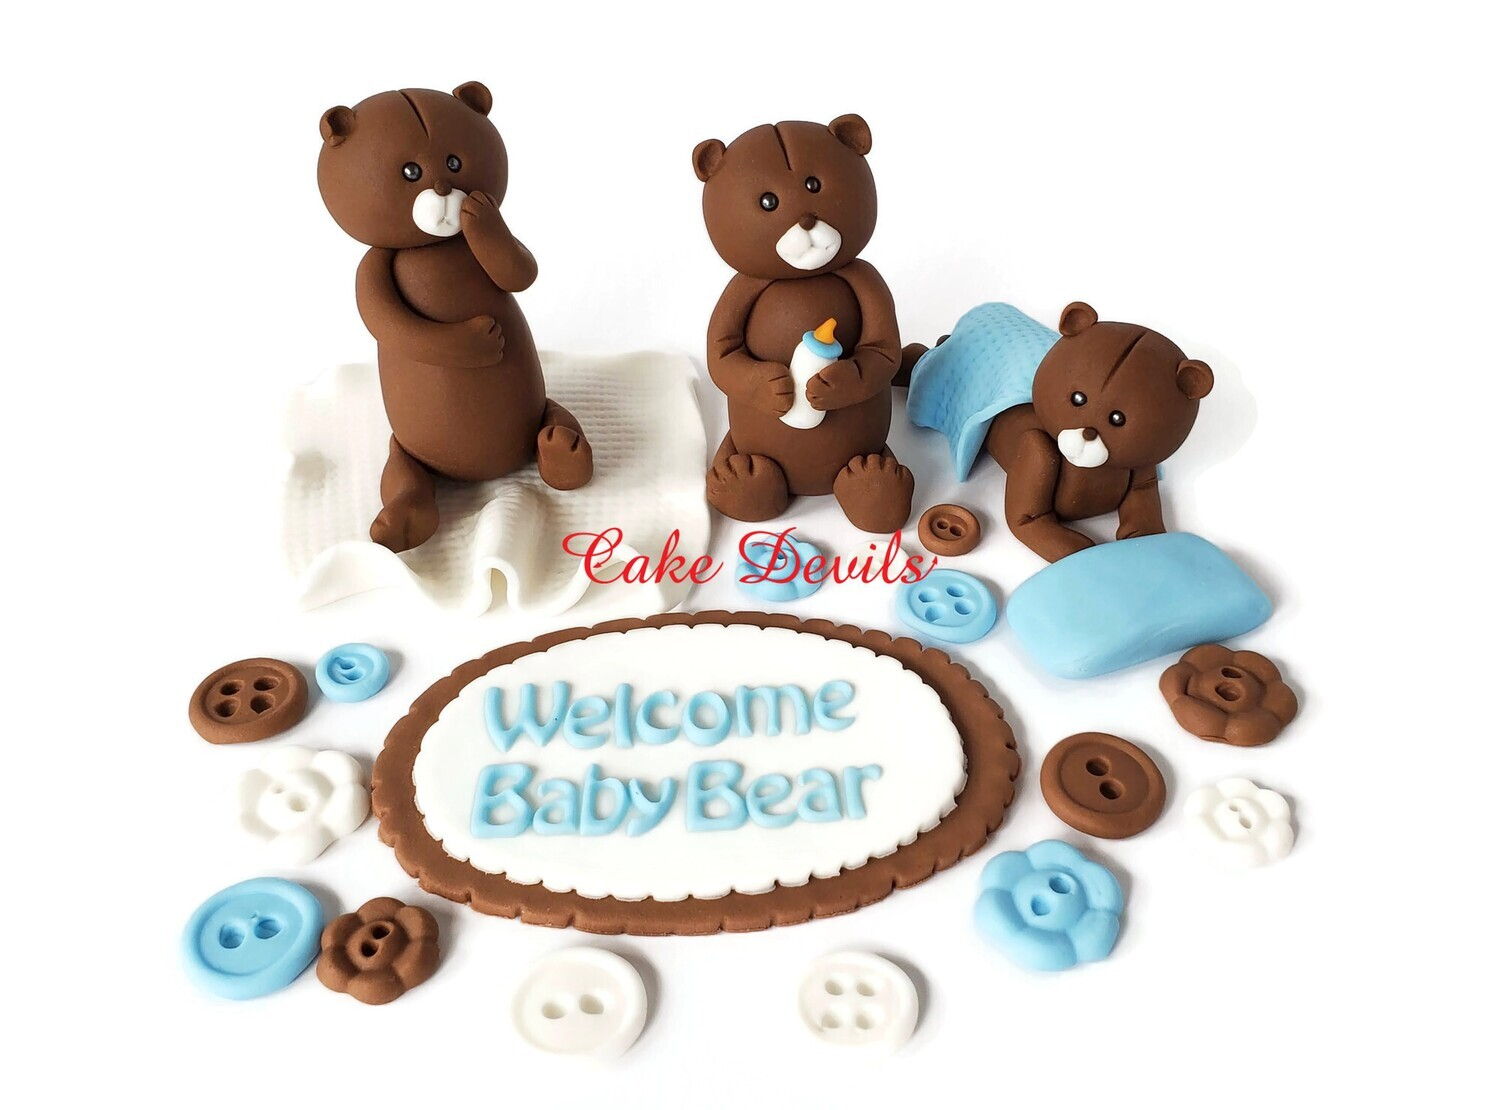 Fondant Teddy Bear Cake Toppers With Baby Bear Plaque and Fondant Buttons, great for a Baby Shower Cake